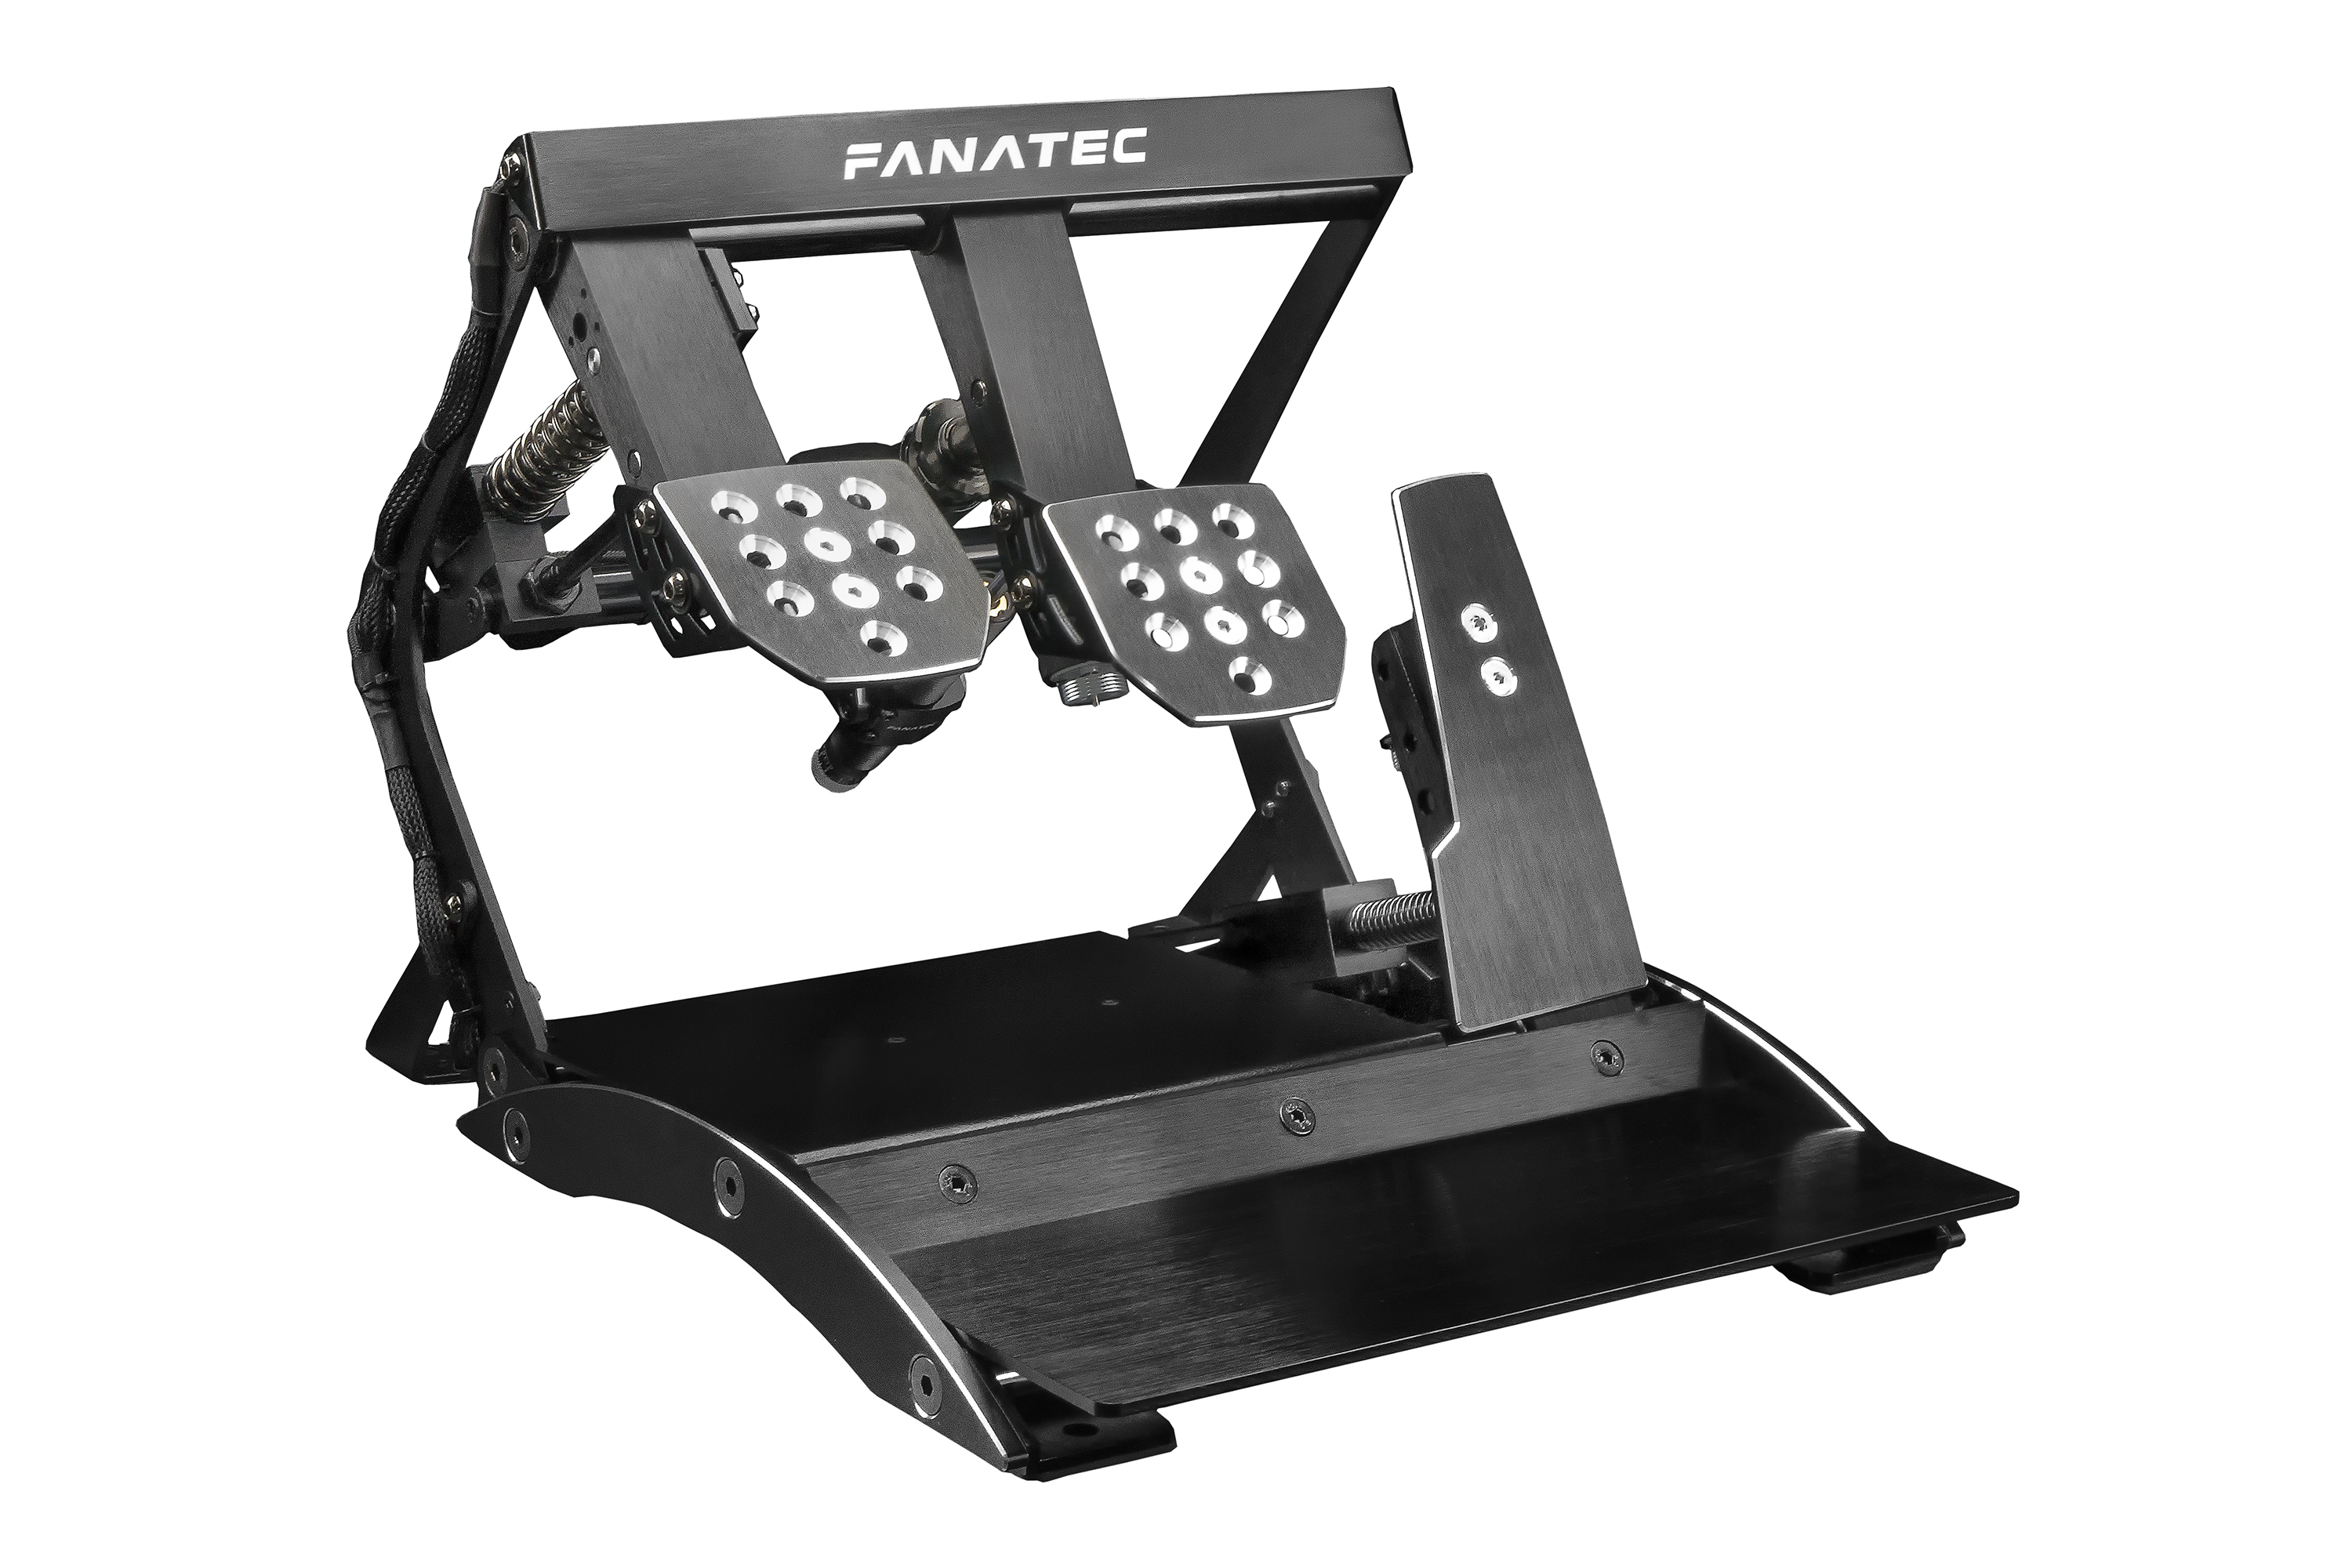 Fanatec Announces the ClubSport Pedals V3 Inverted